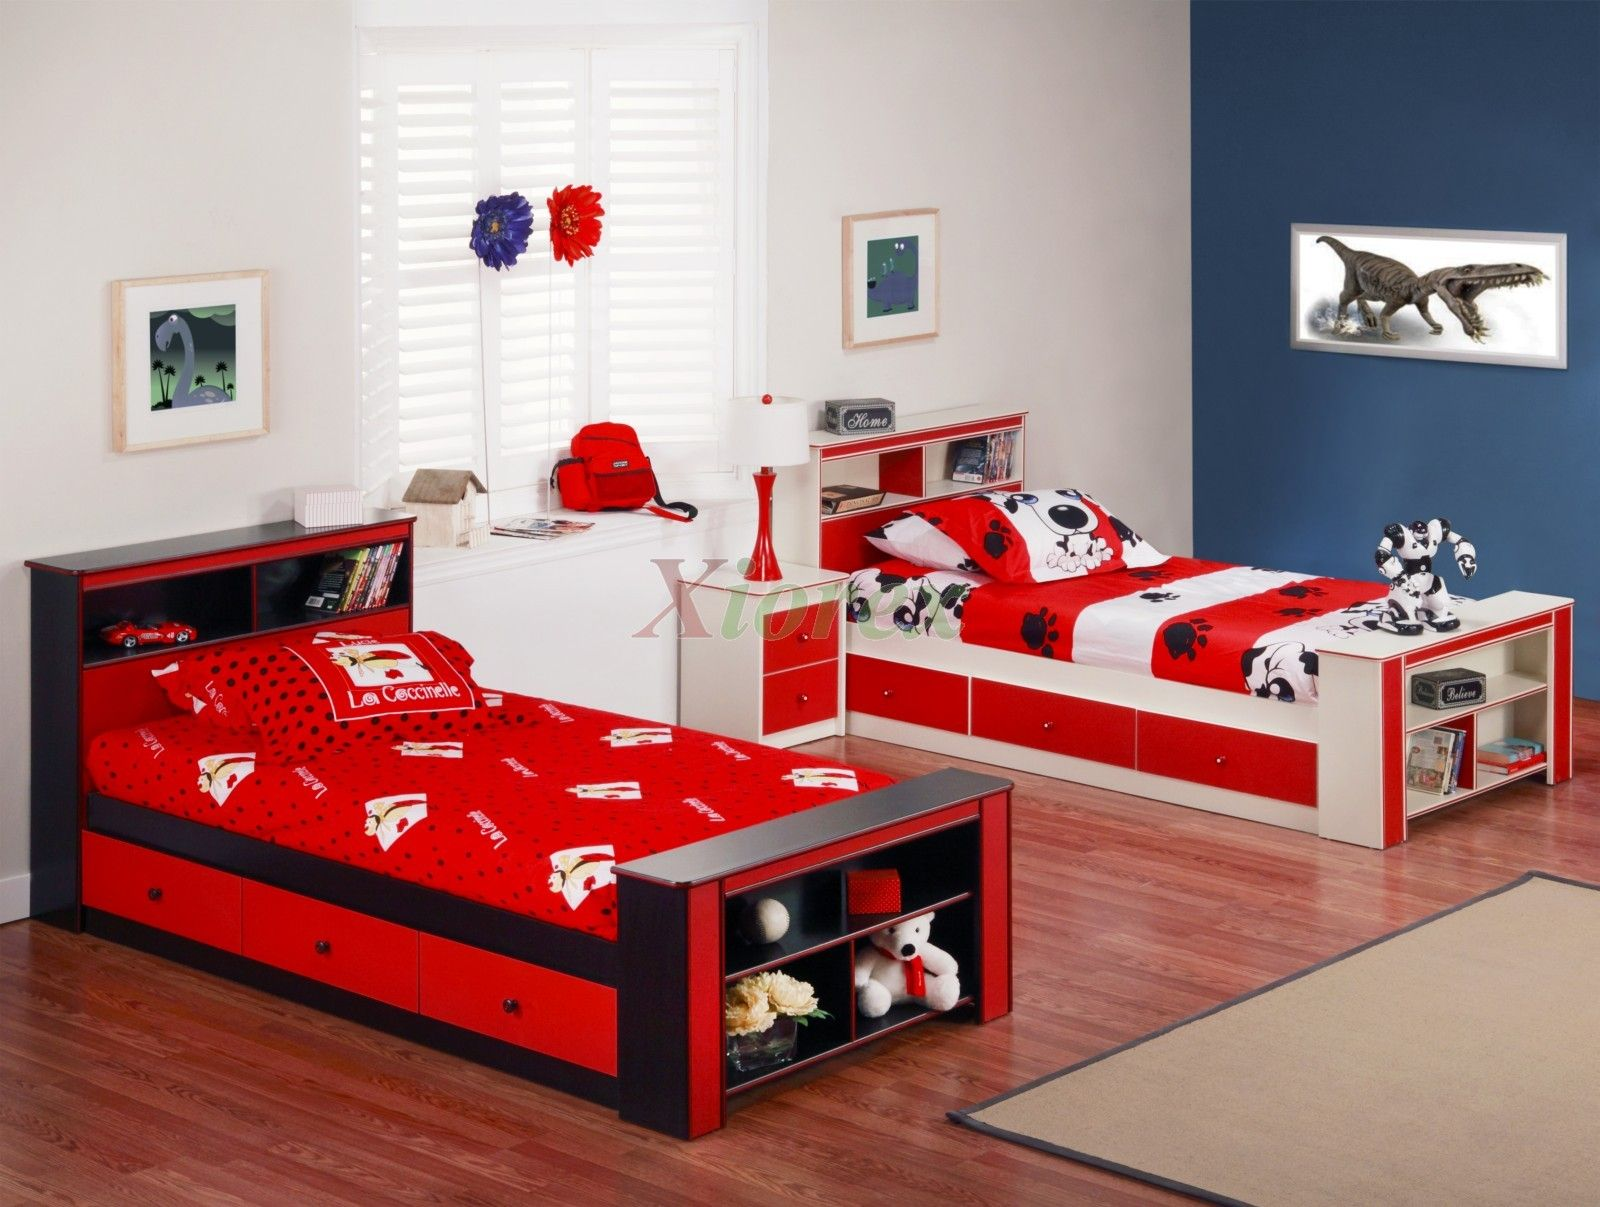 Cheap Kids Bedroom Furniture Kids Bedroom Furniture Sets For Girls Trellischica In 2020 Cheap Bedroom Furniture Kids Bedroom Furniture Sets Twin Bedroom Furniture Sets